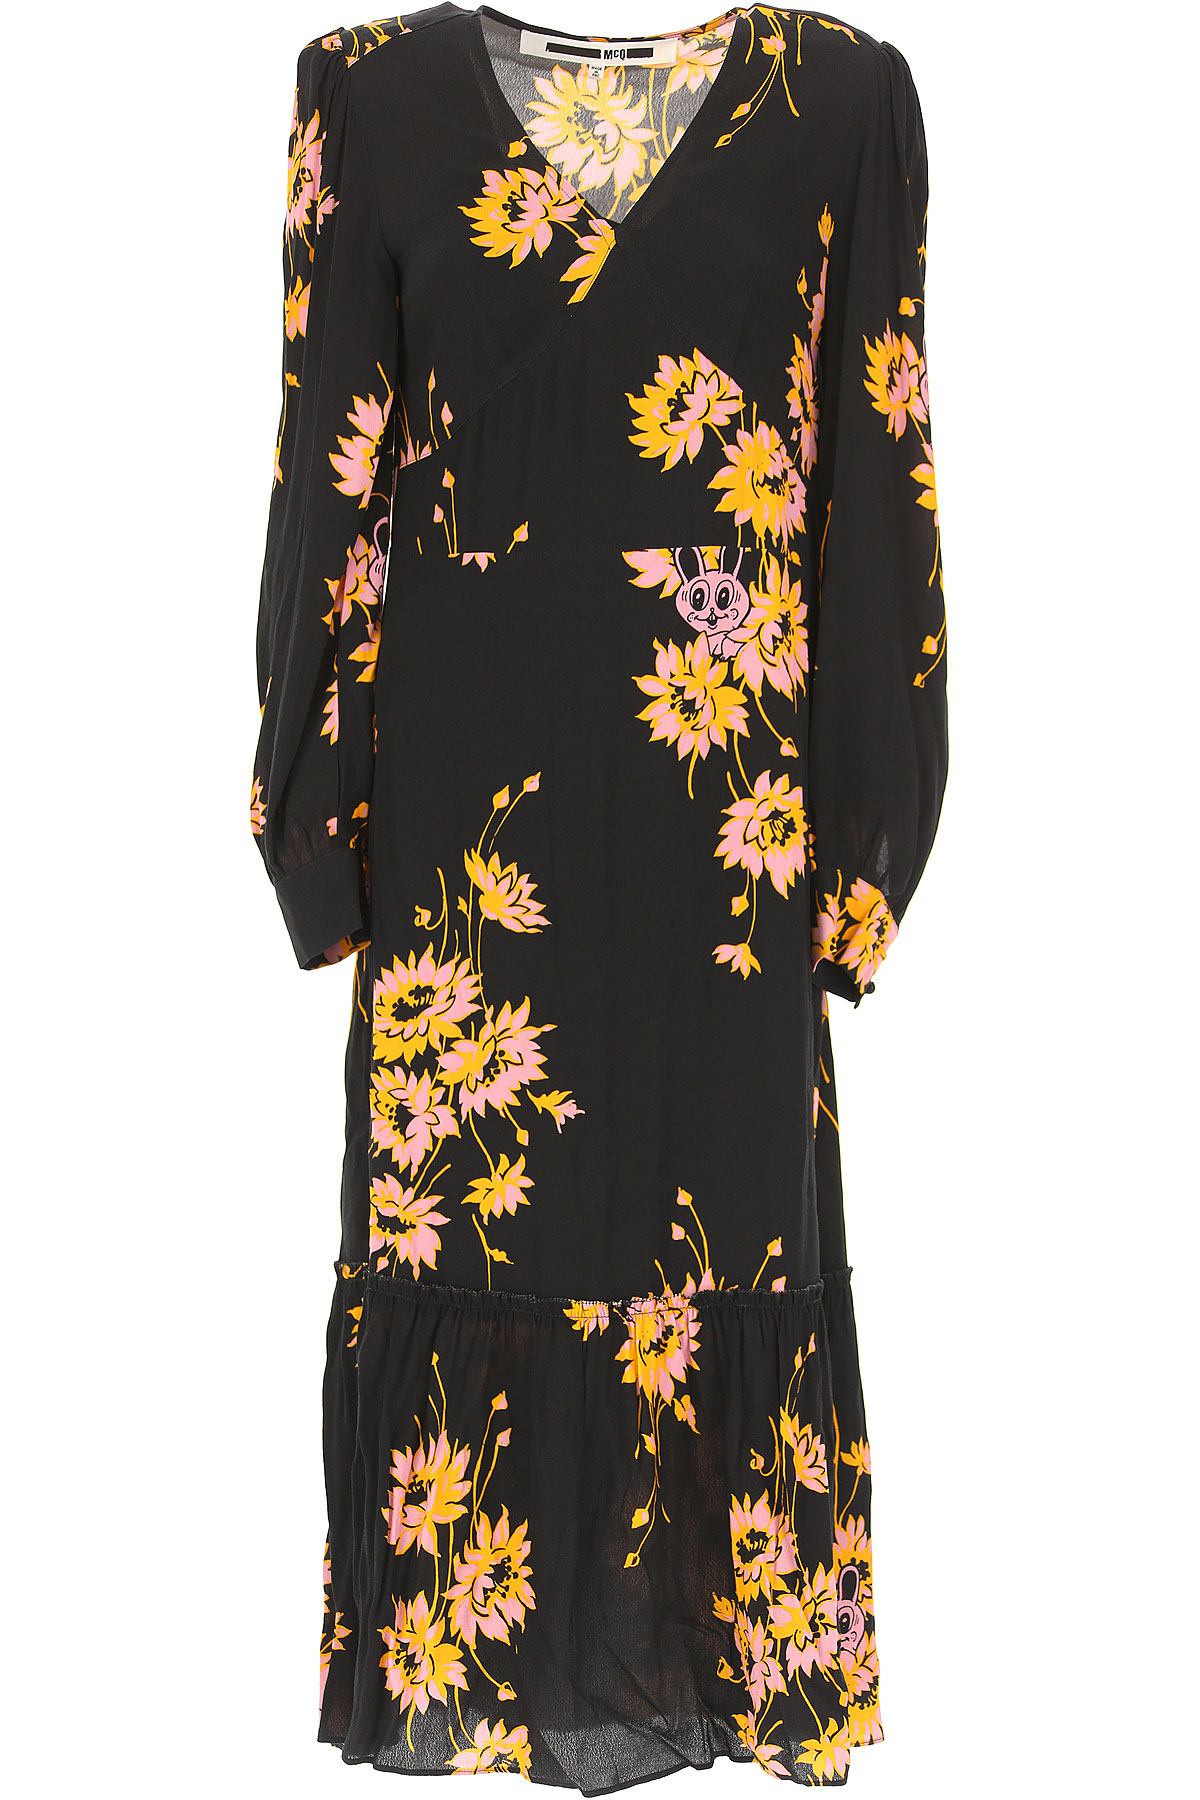 Image of Alexander McQueen McQ Dress for Women, Evening Cocktail Party, Black, polyester, 2017, UK 6 - US 4 - EU 38 UK 8 - US 6 - EU 40 UK 10 - US 8 - EU 42 UK 12 - US 10 - EU 44